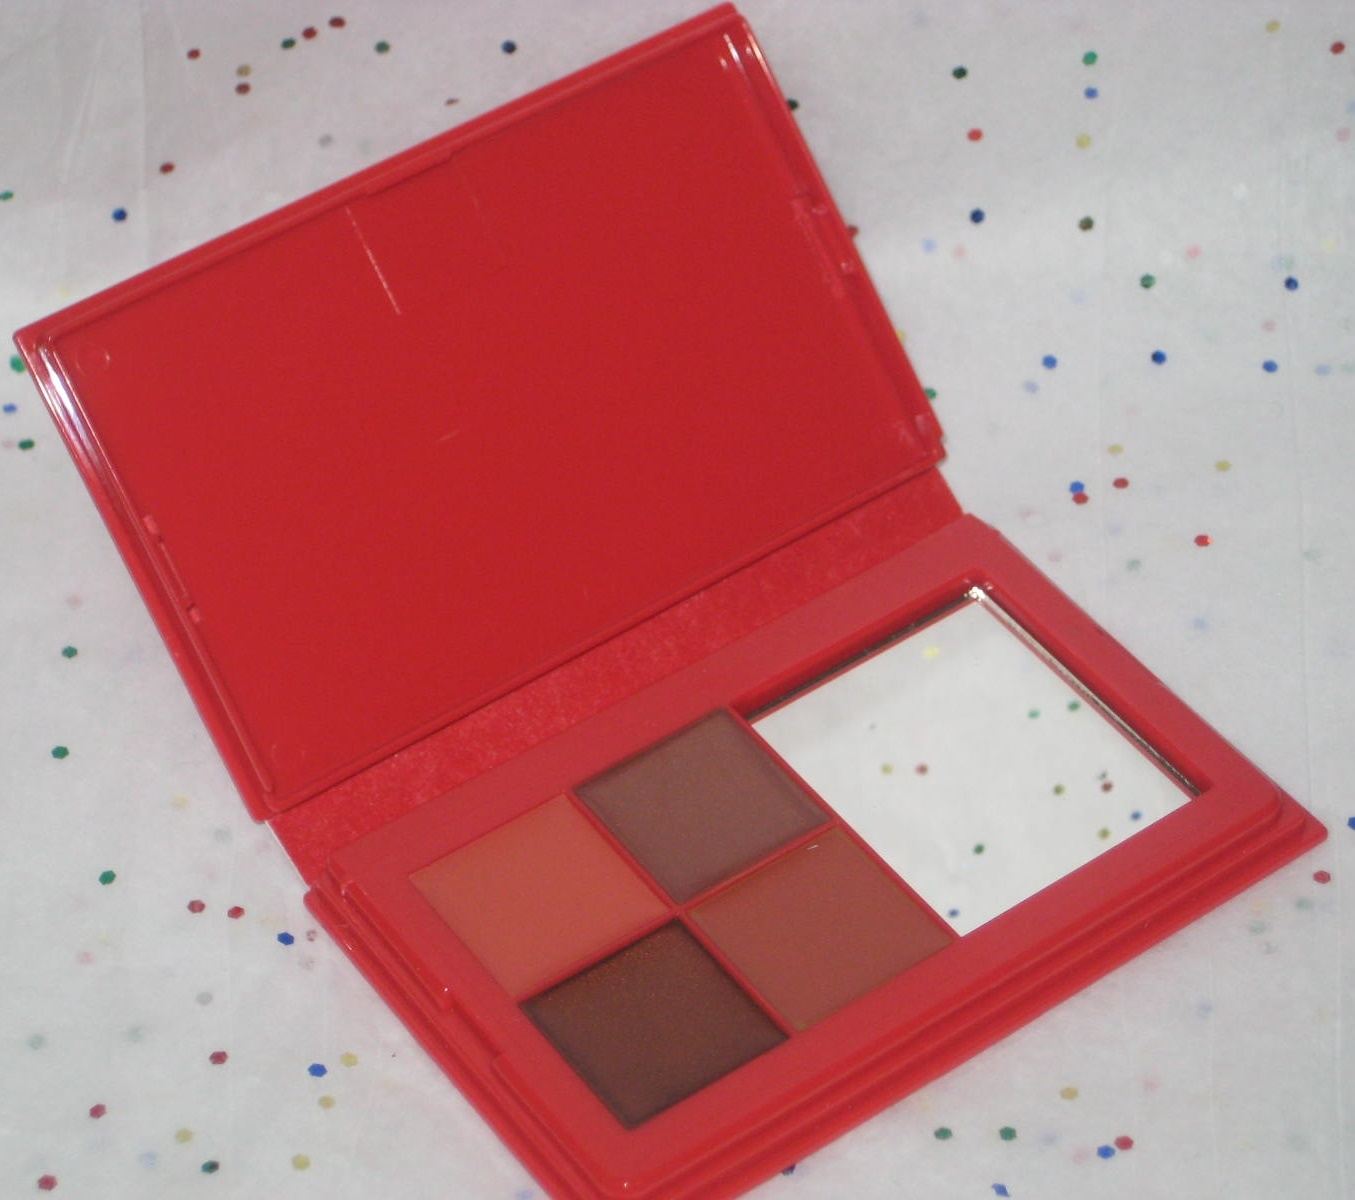 Primary image for Clinique Colour Surge Palette in Pure Posh, Coral Crush, Honey Nude, Sassy Spice